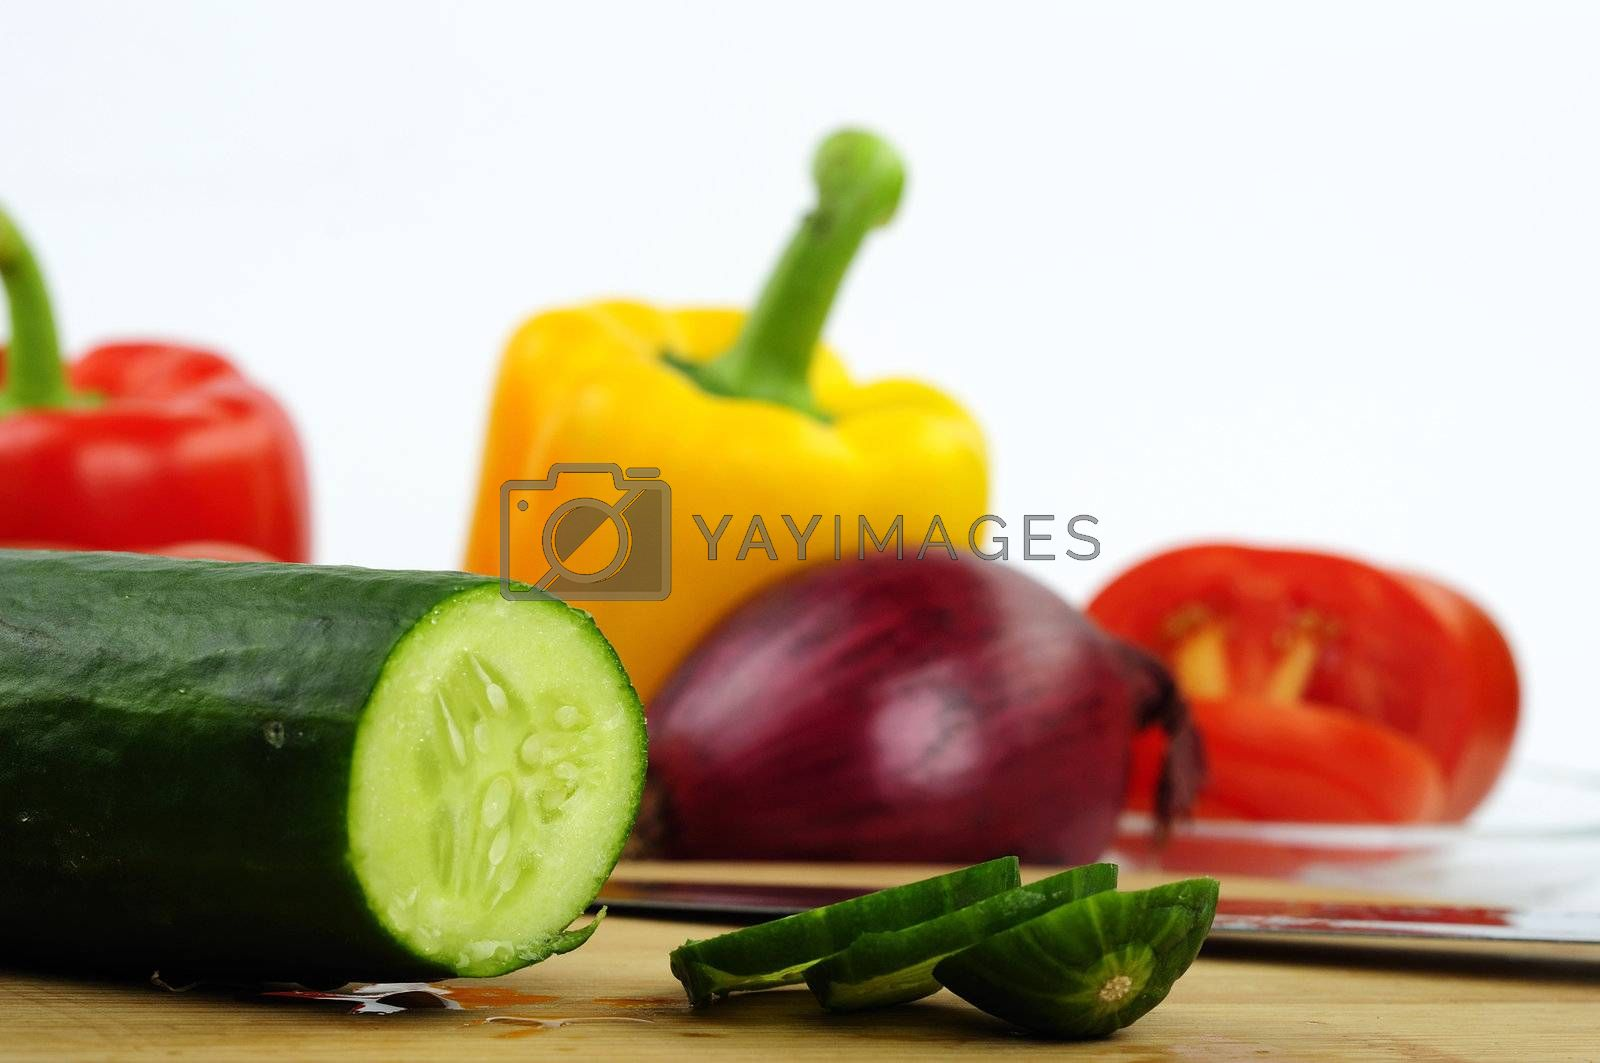 Royalty free image of vegetable by dundersztyc